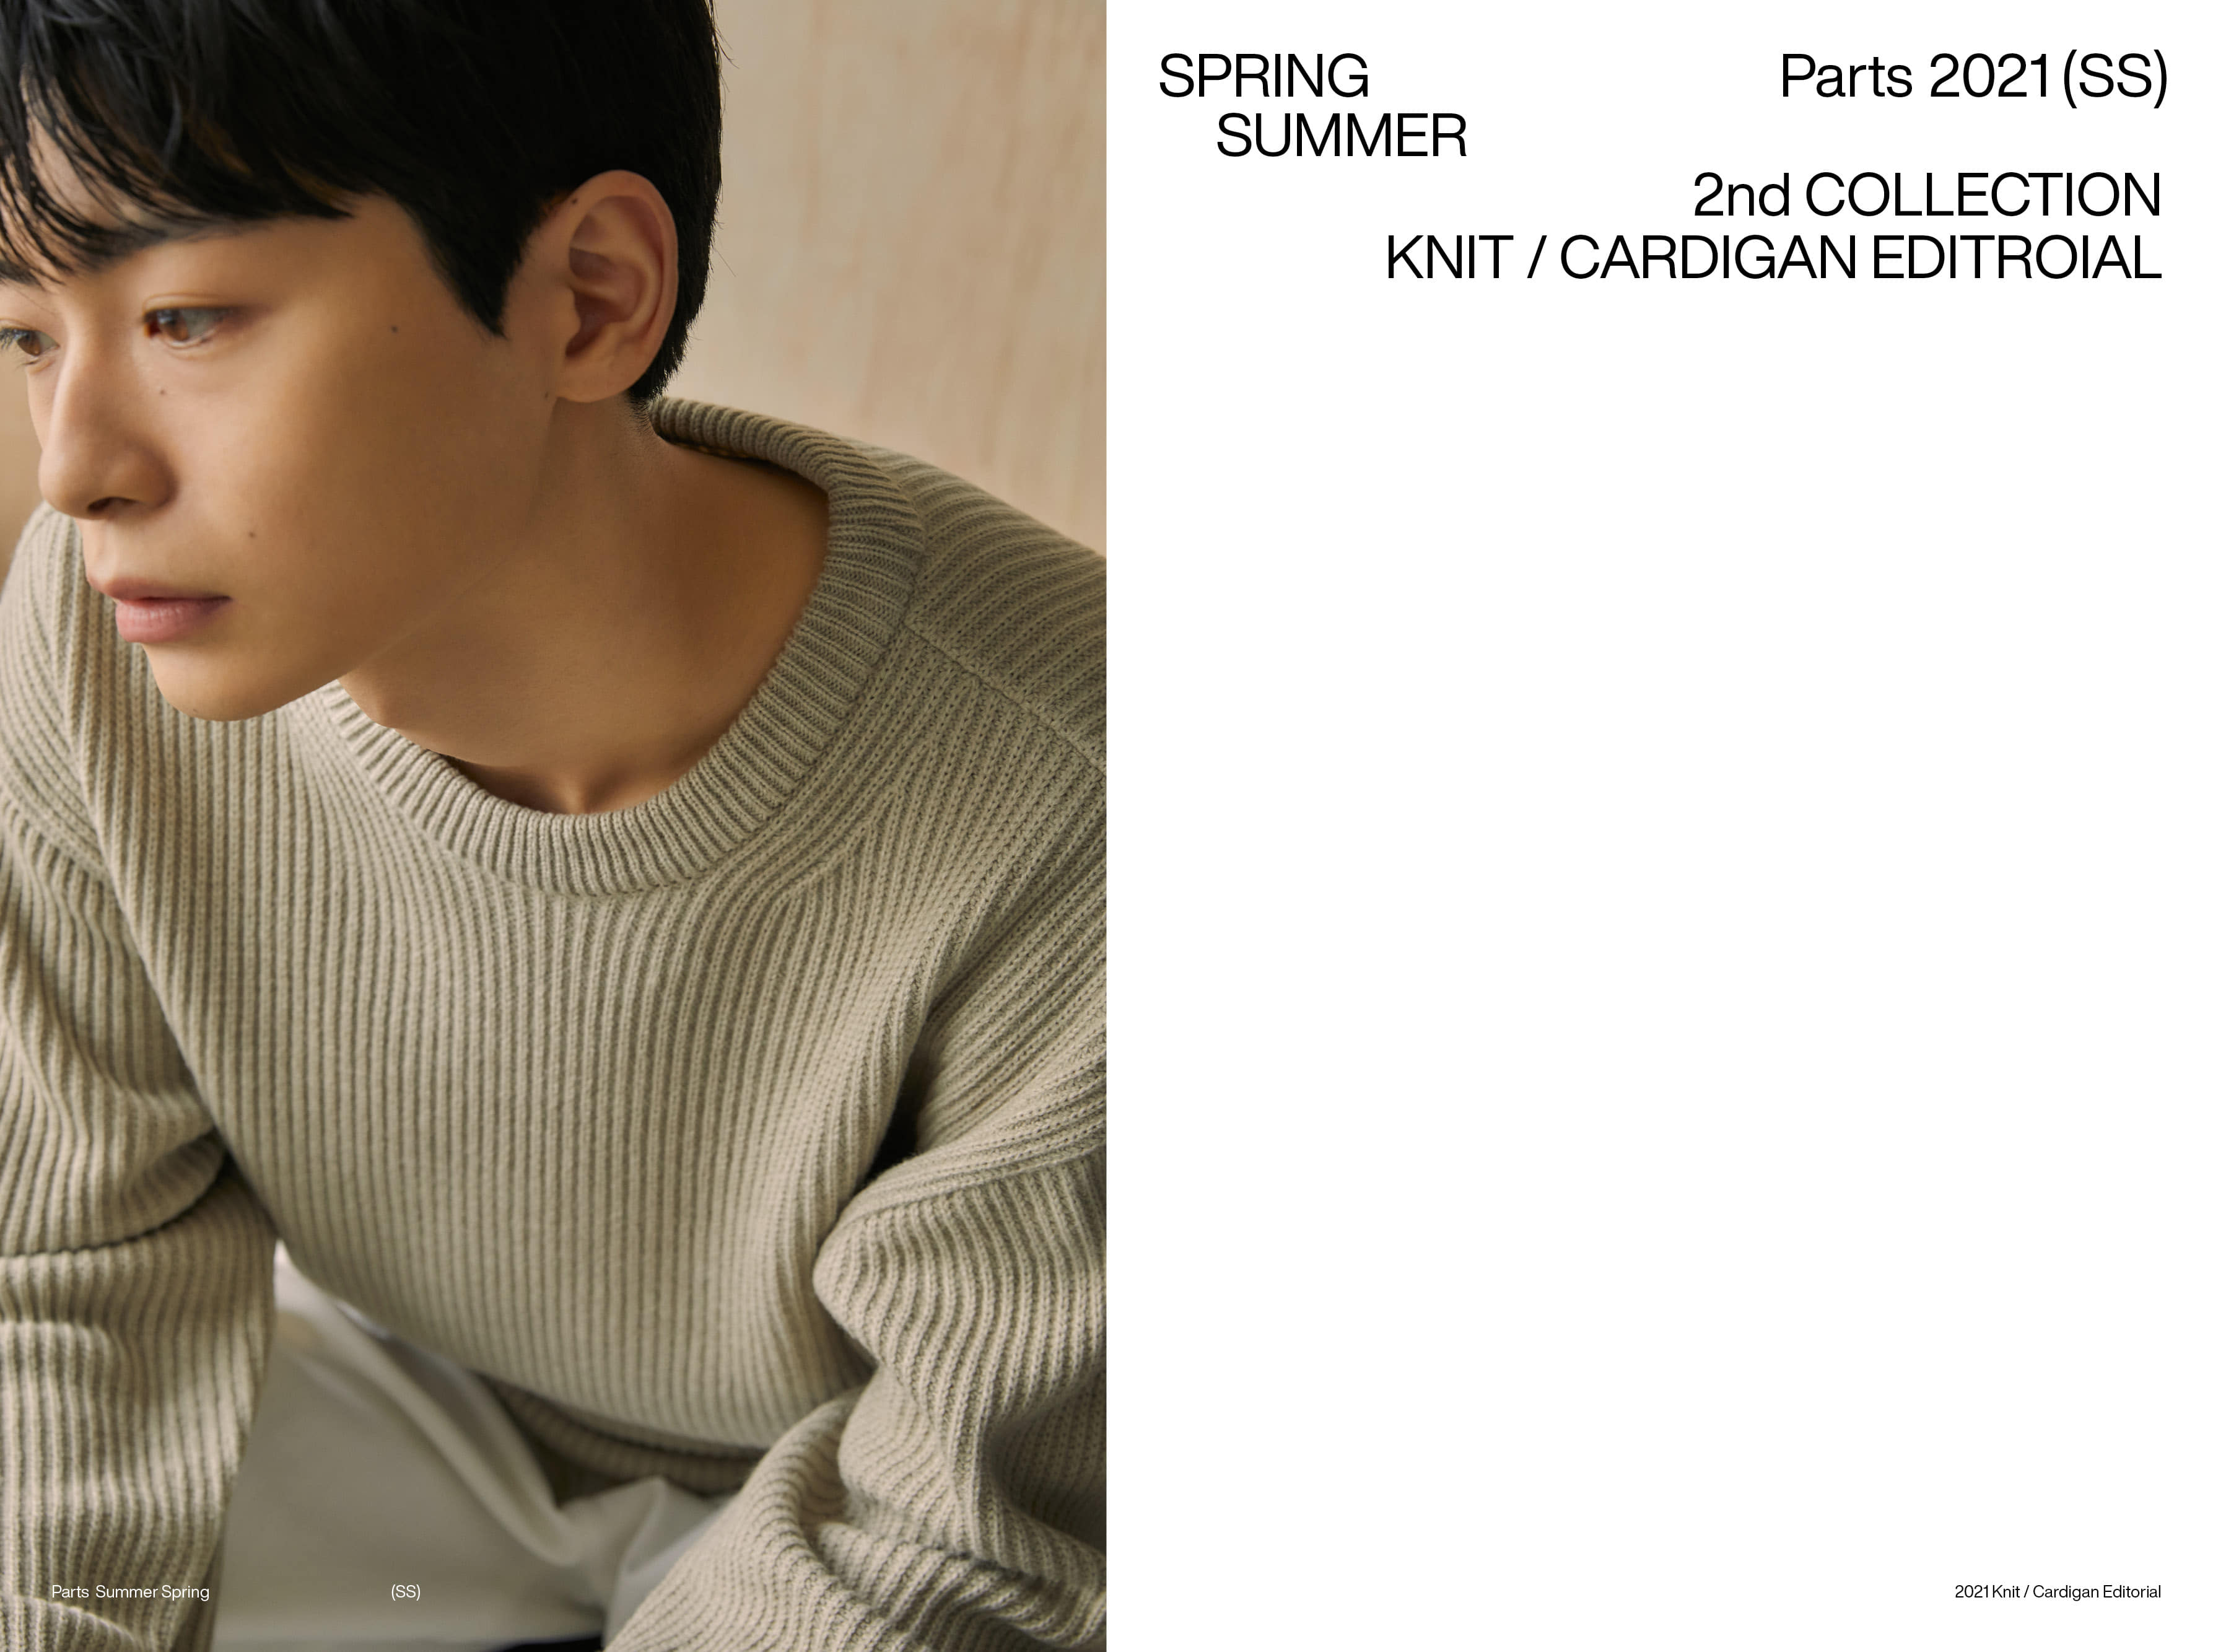 PARTS 2021 Knit and Cardigan Collection(2)